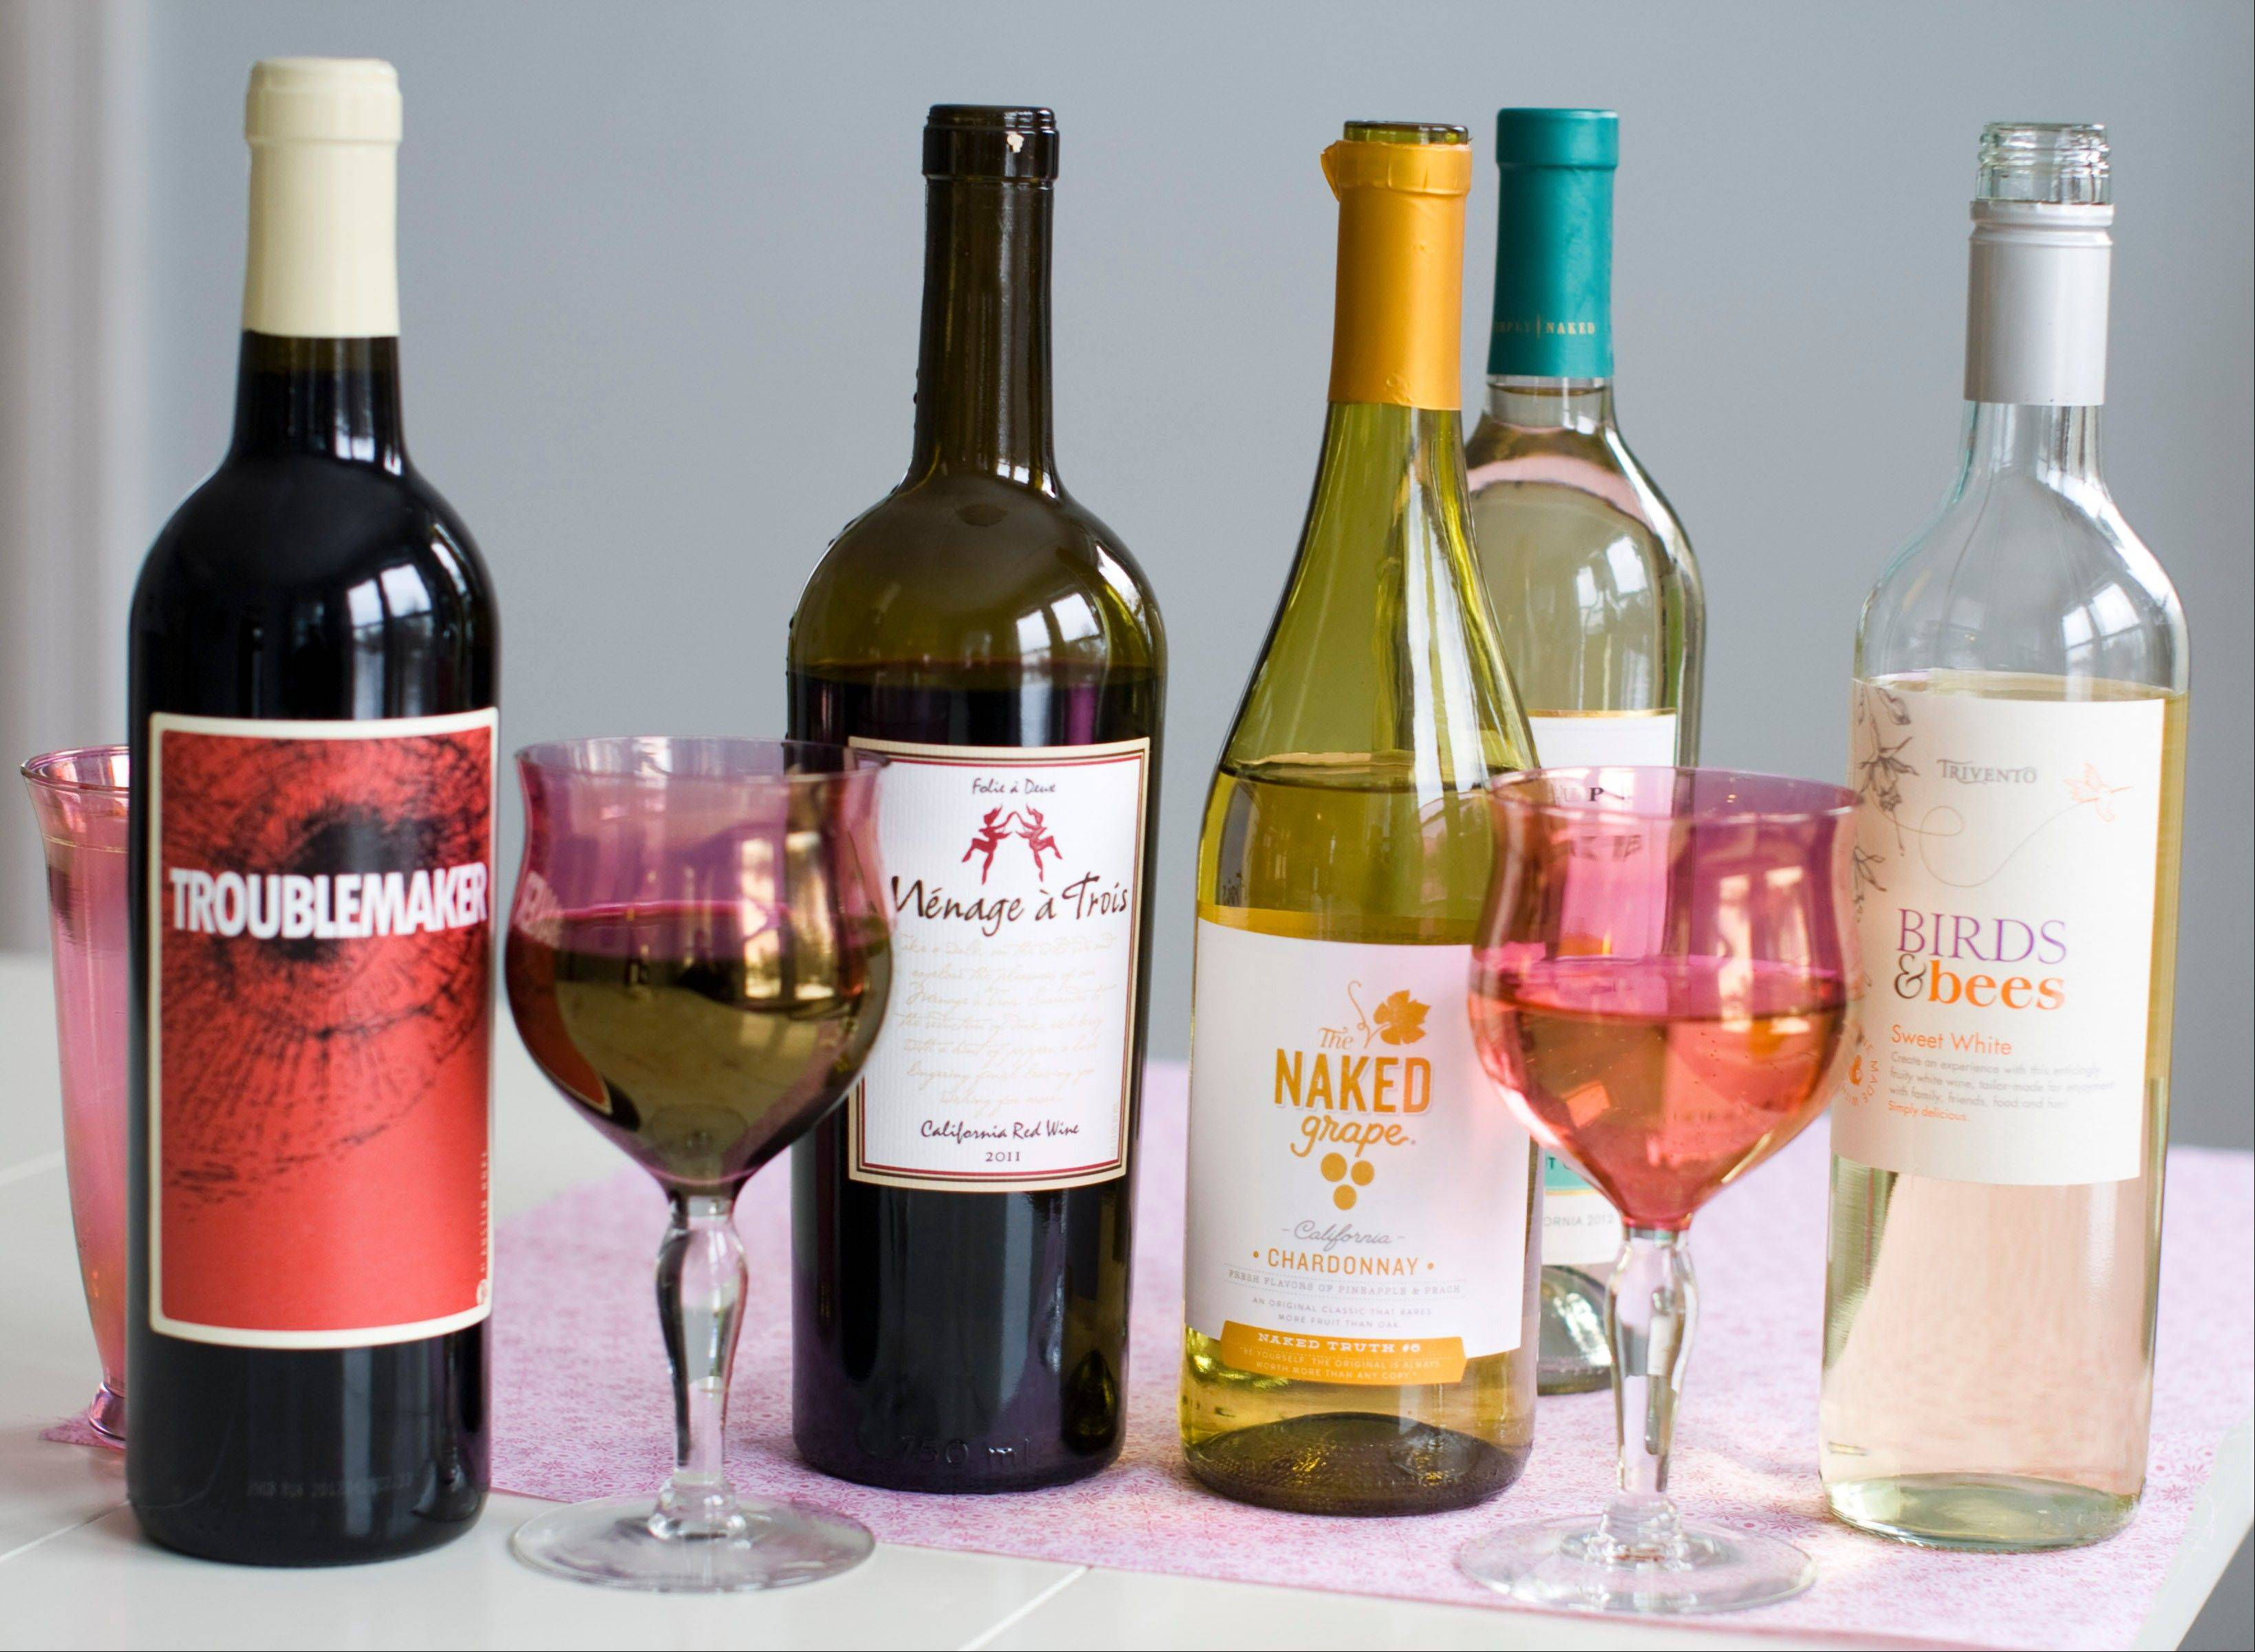 Wine abounds with labels that range from sweet to saucy for Valentine's Day enjoyment.